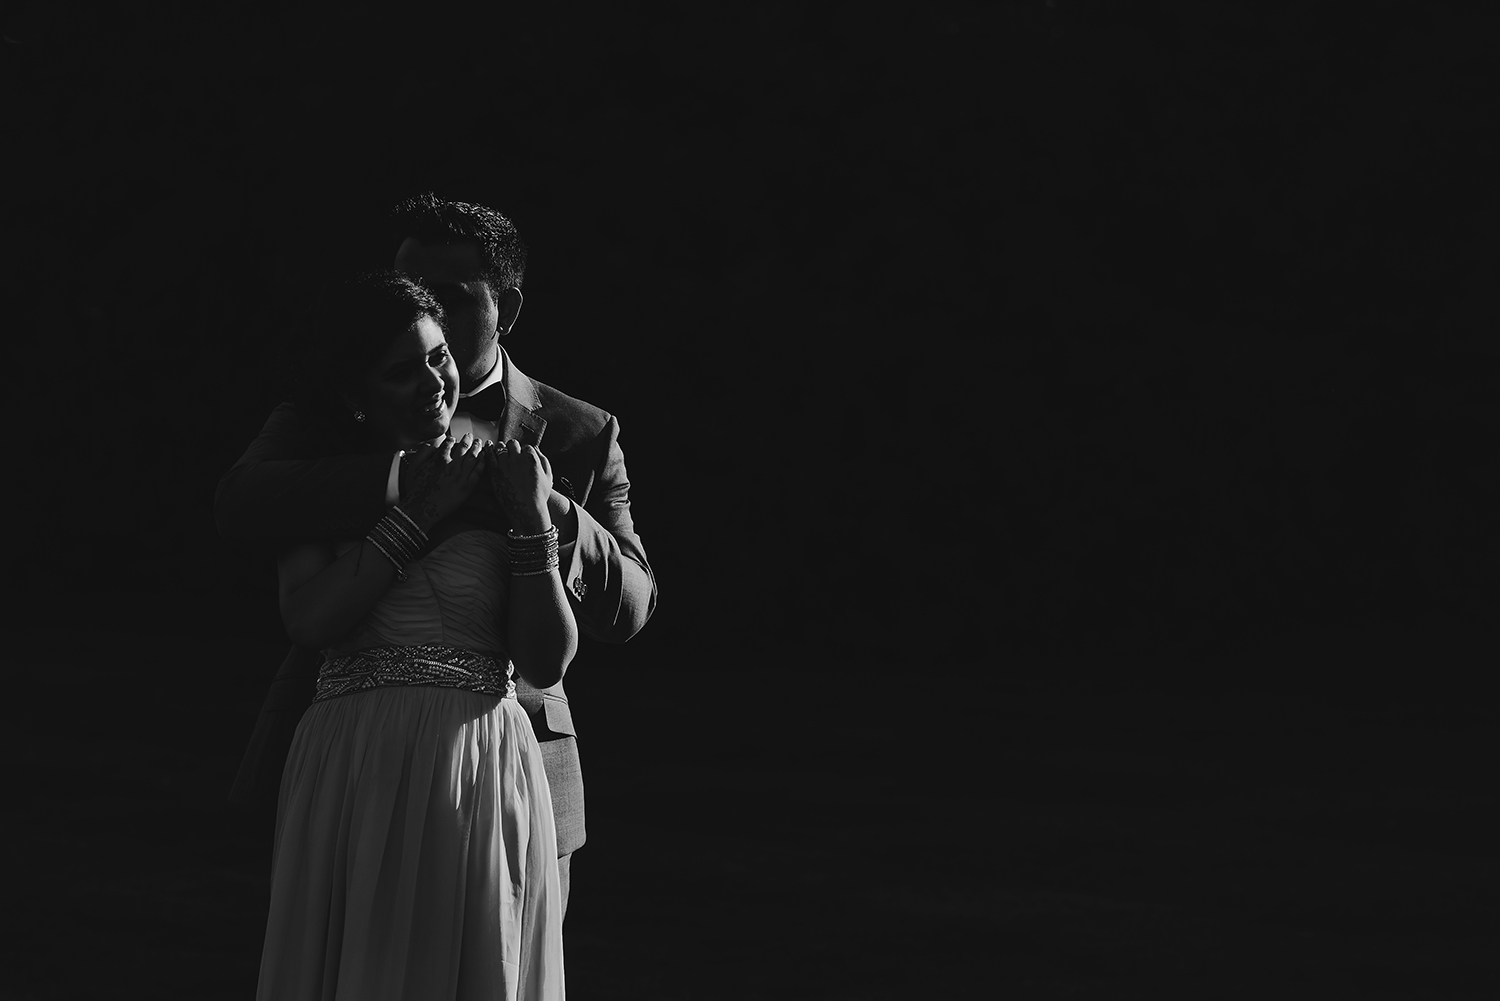 bw photo of bride and groom in nice light